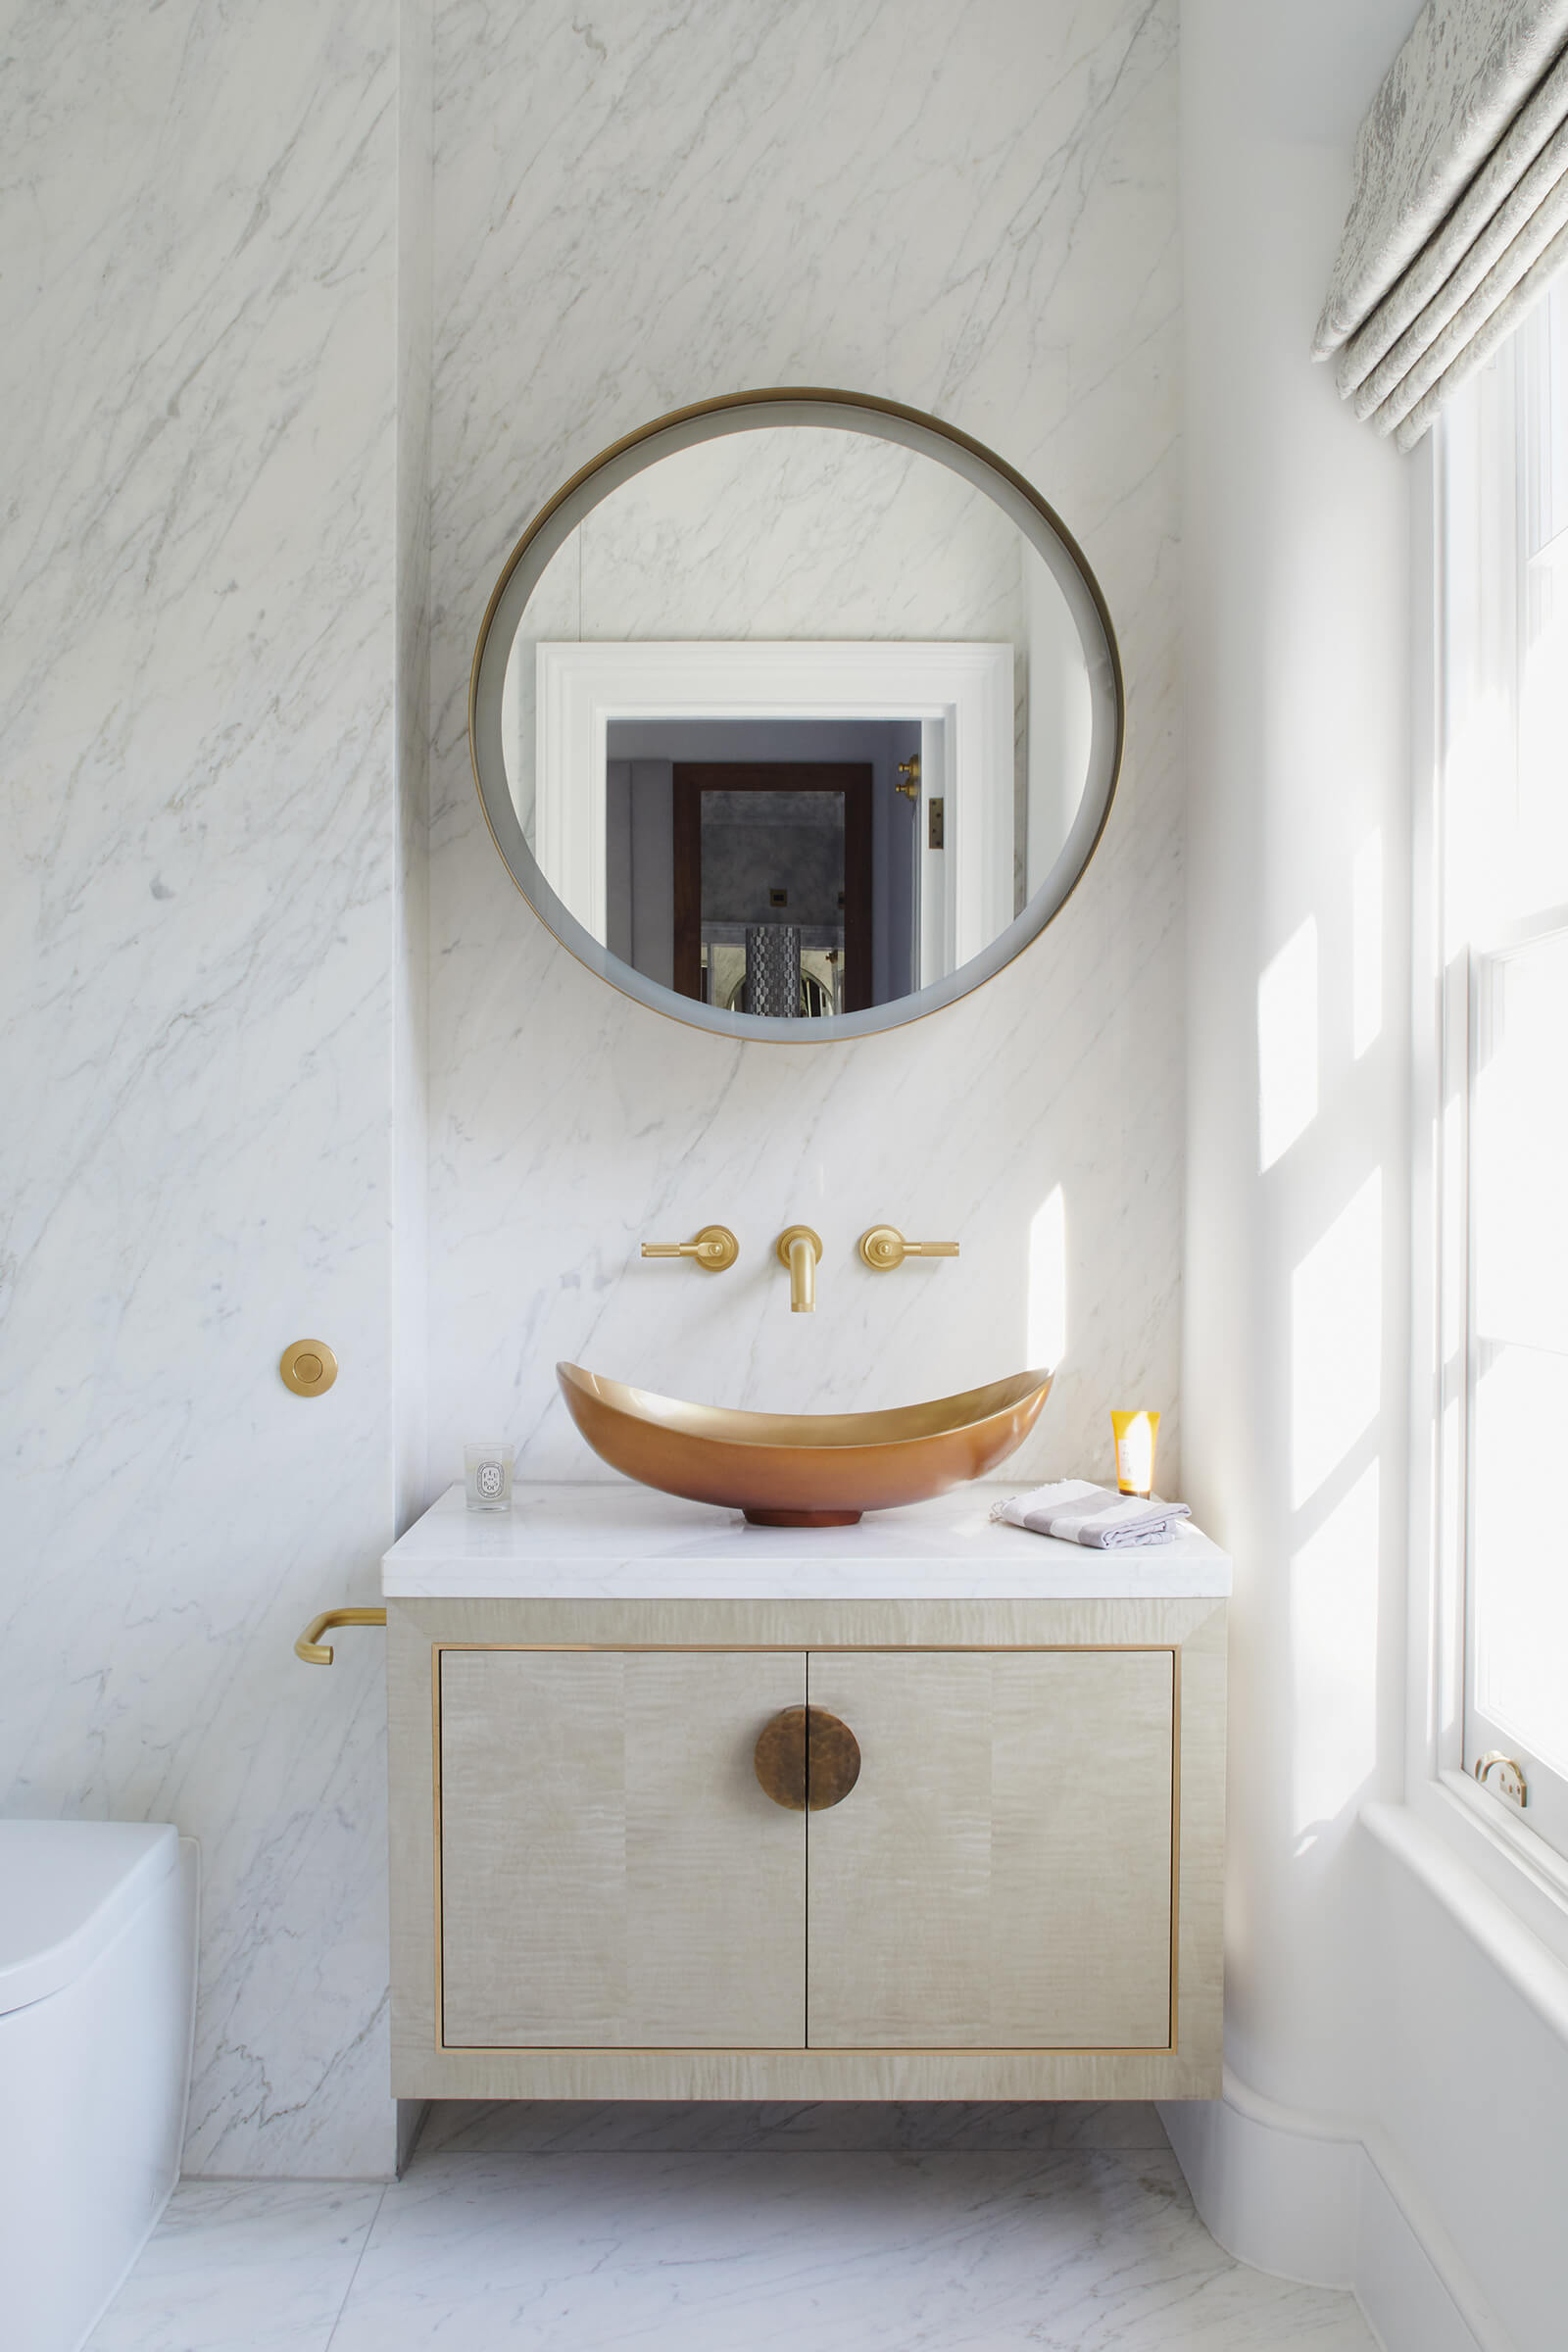 bathroom vanity cabinet with brass details below a brass sink in a carrara marble bathroom